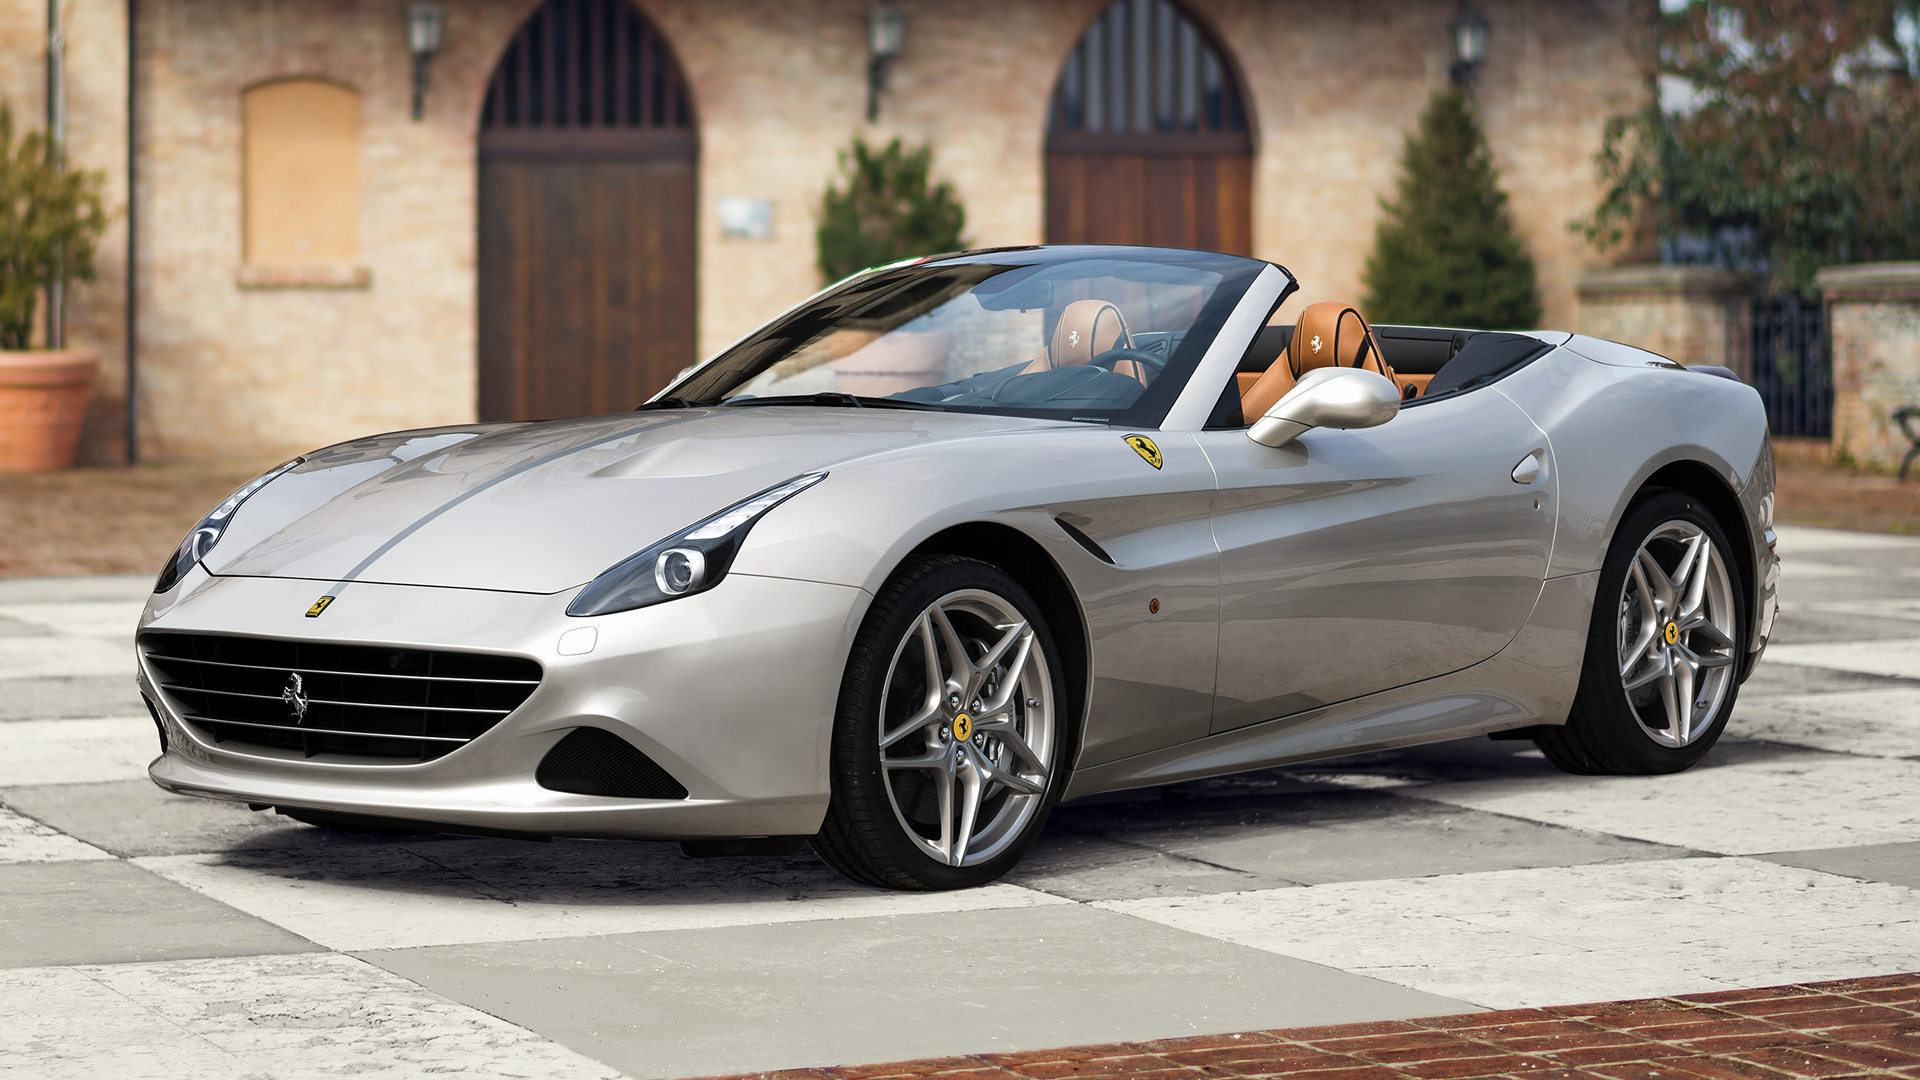 2015 Ferrari California T Tailor Made Wallpapers And Hd